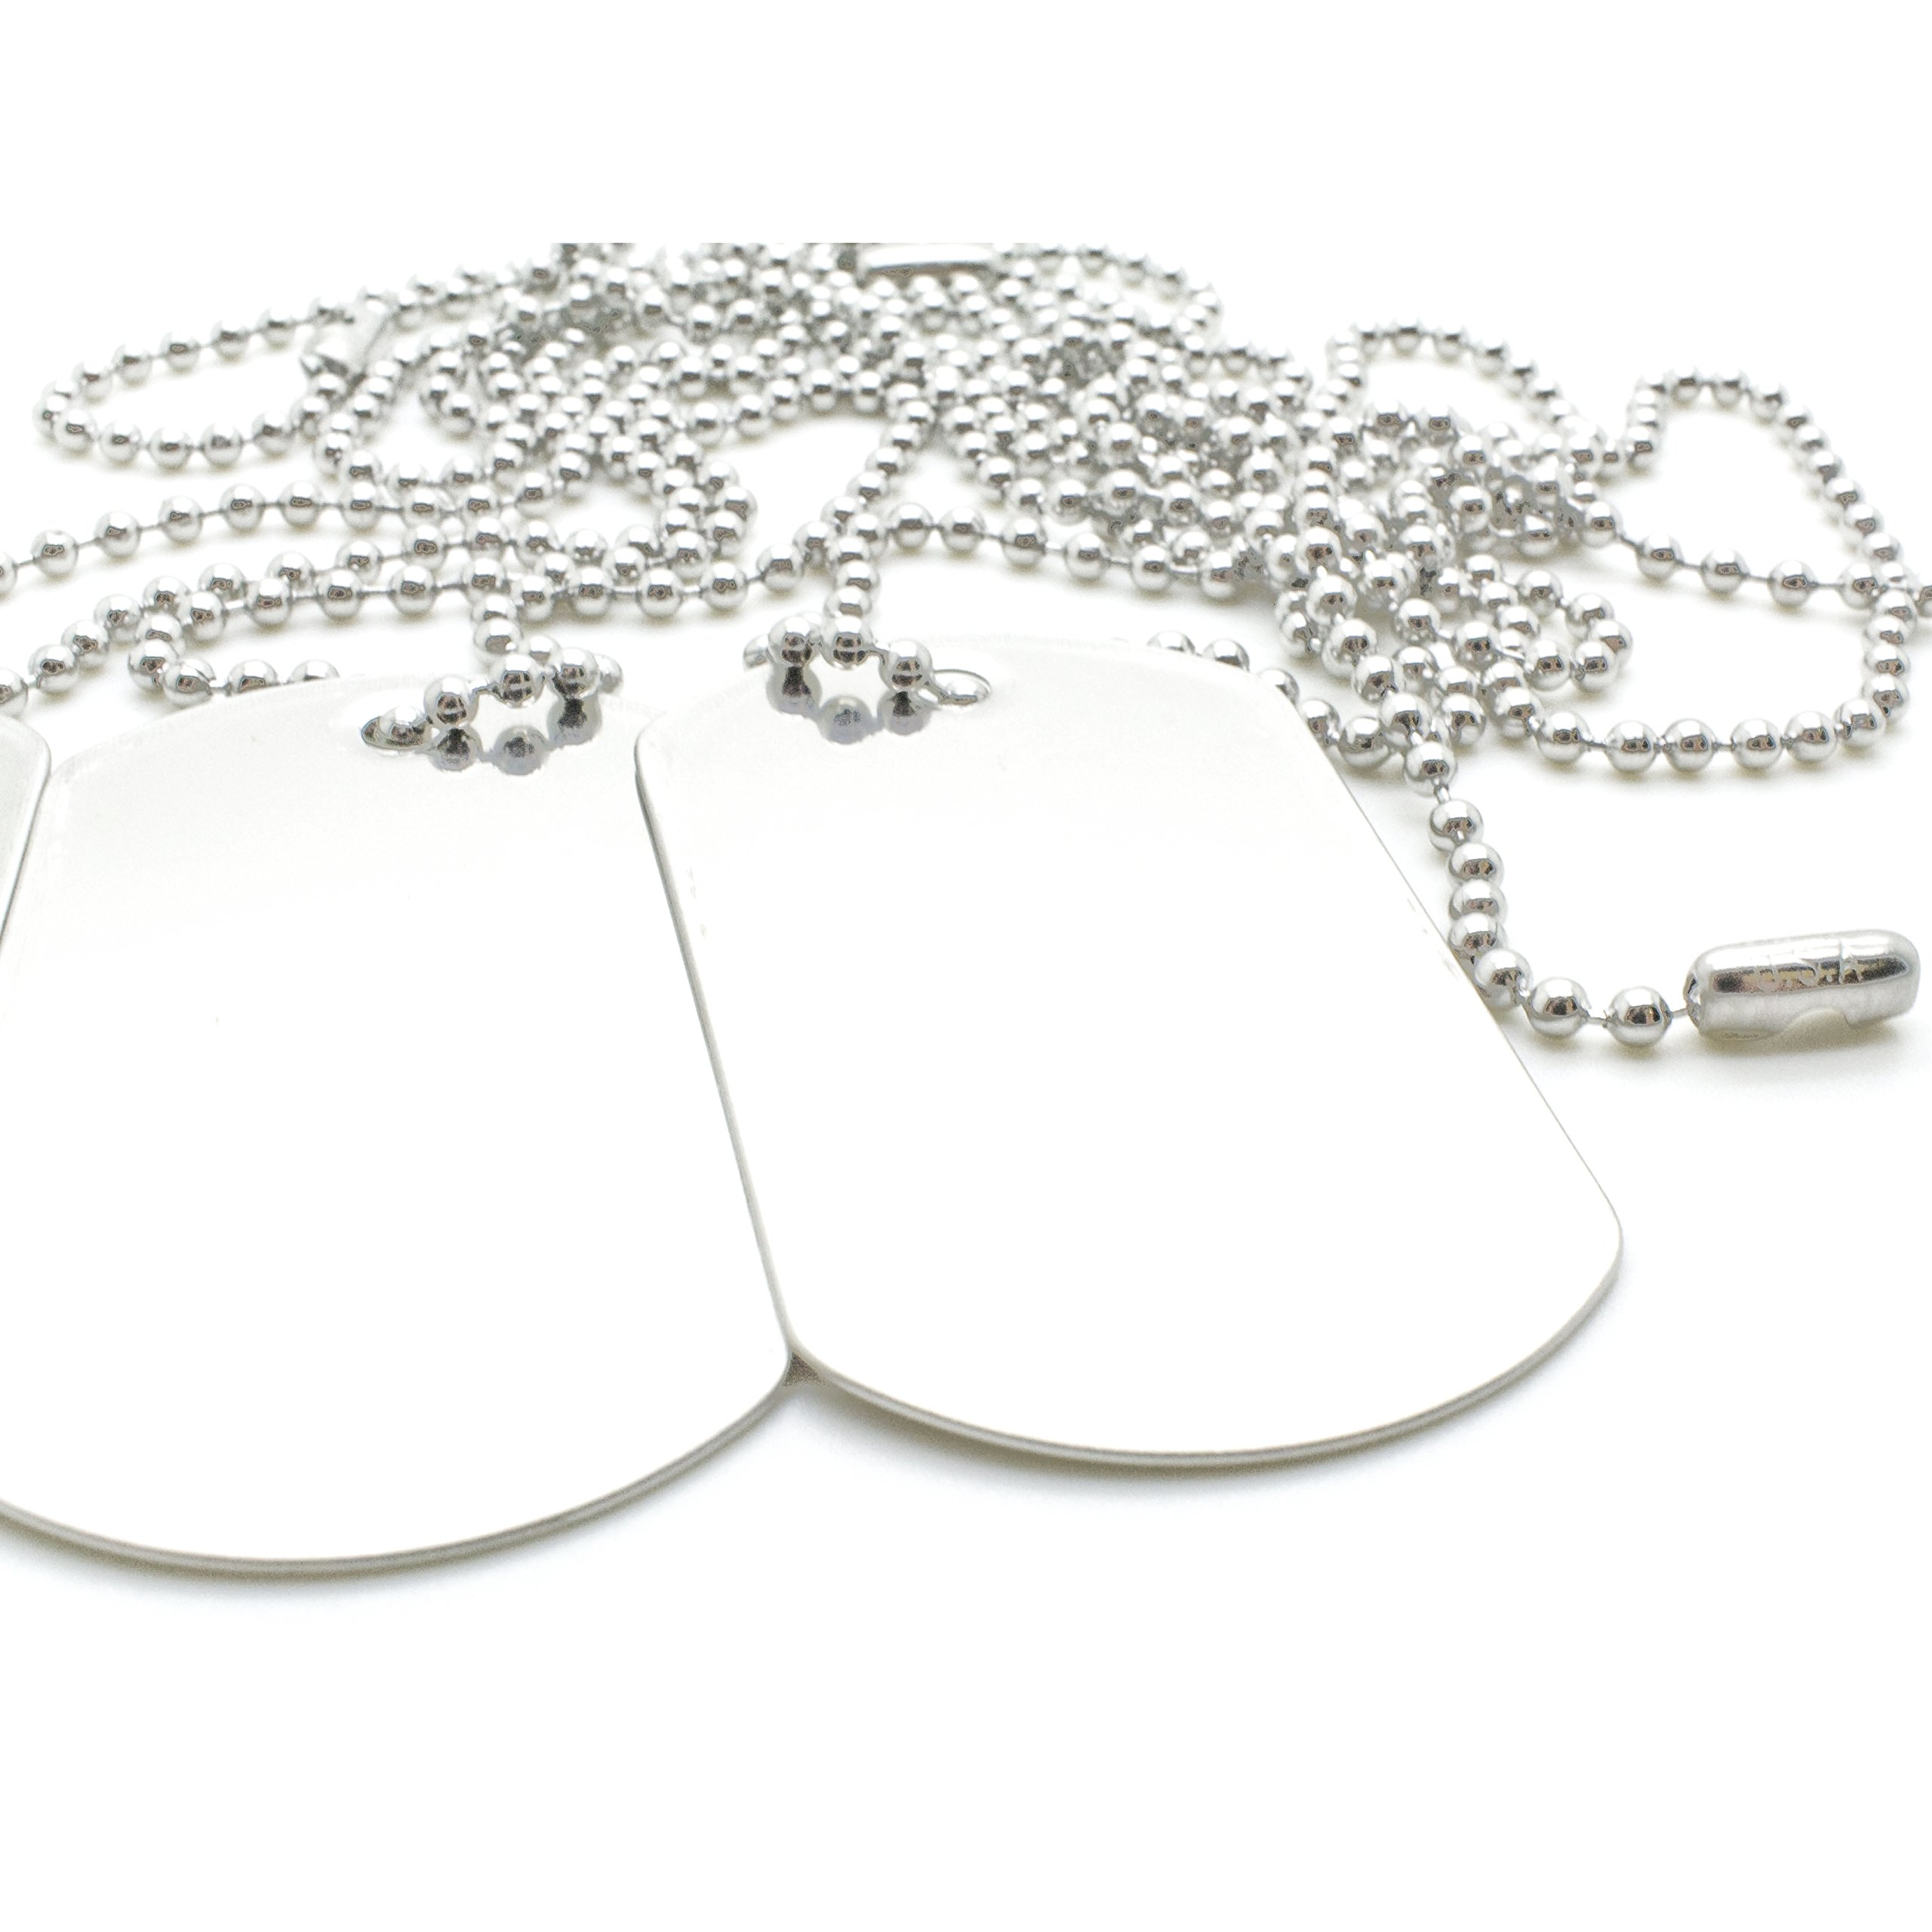 100 COMBO Shiny Stainless Steel Military spec Dog Tags - BLANK with Stainless Steel Chains (100 dog tags w/ 24'' chains)